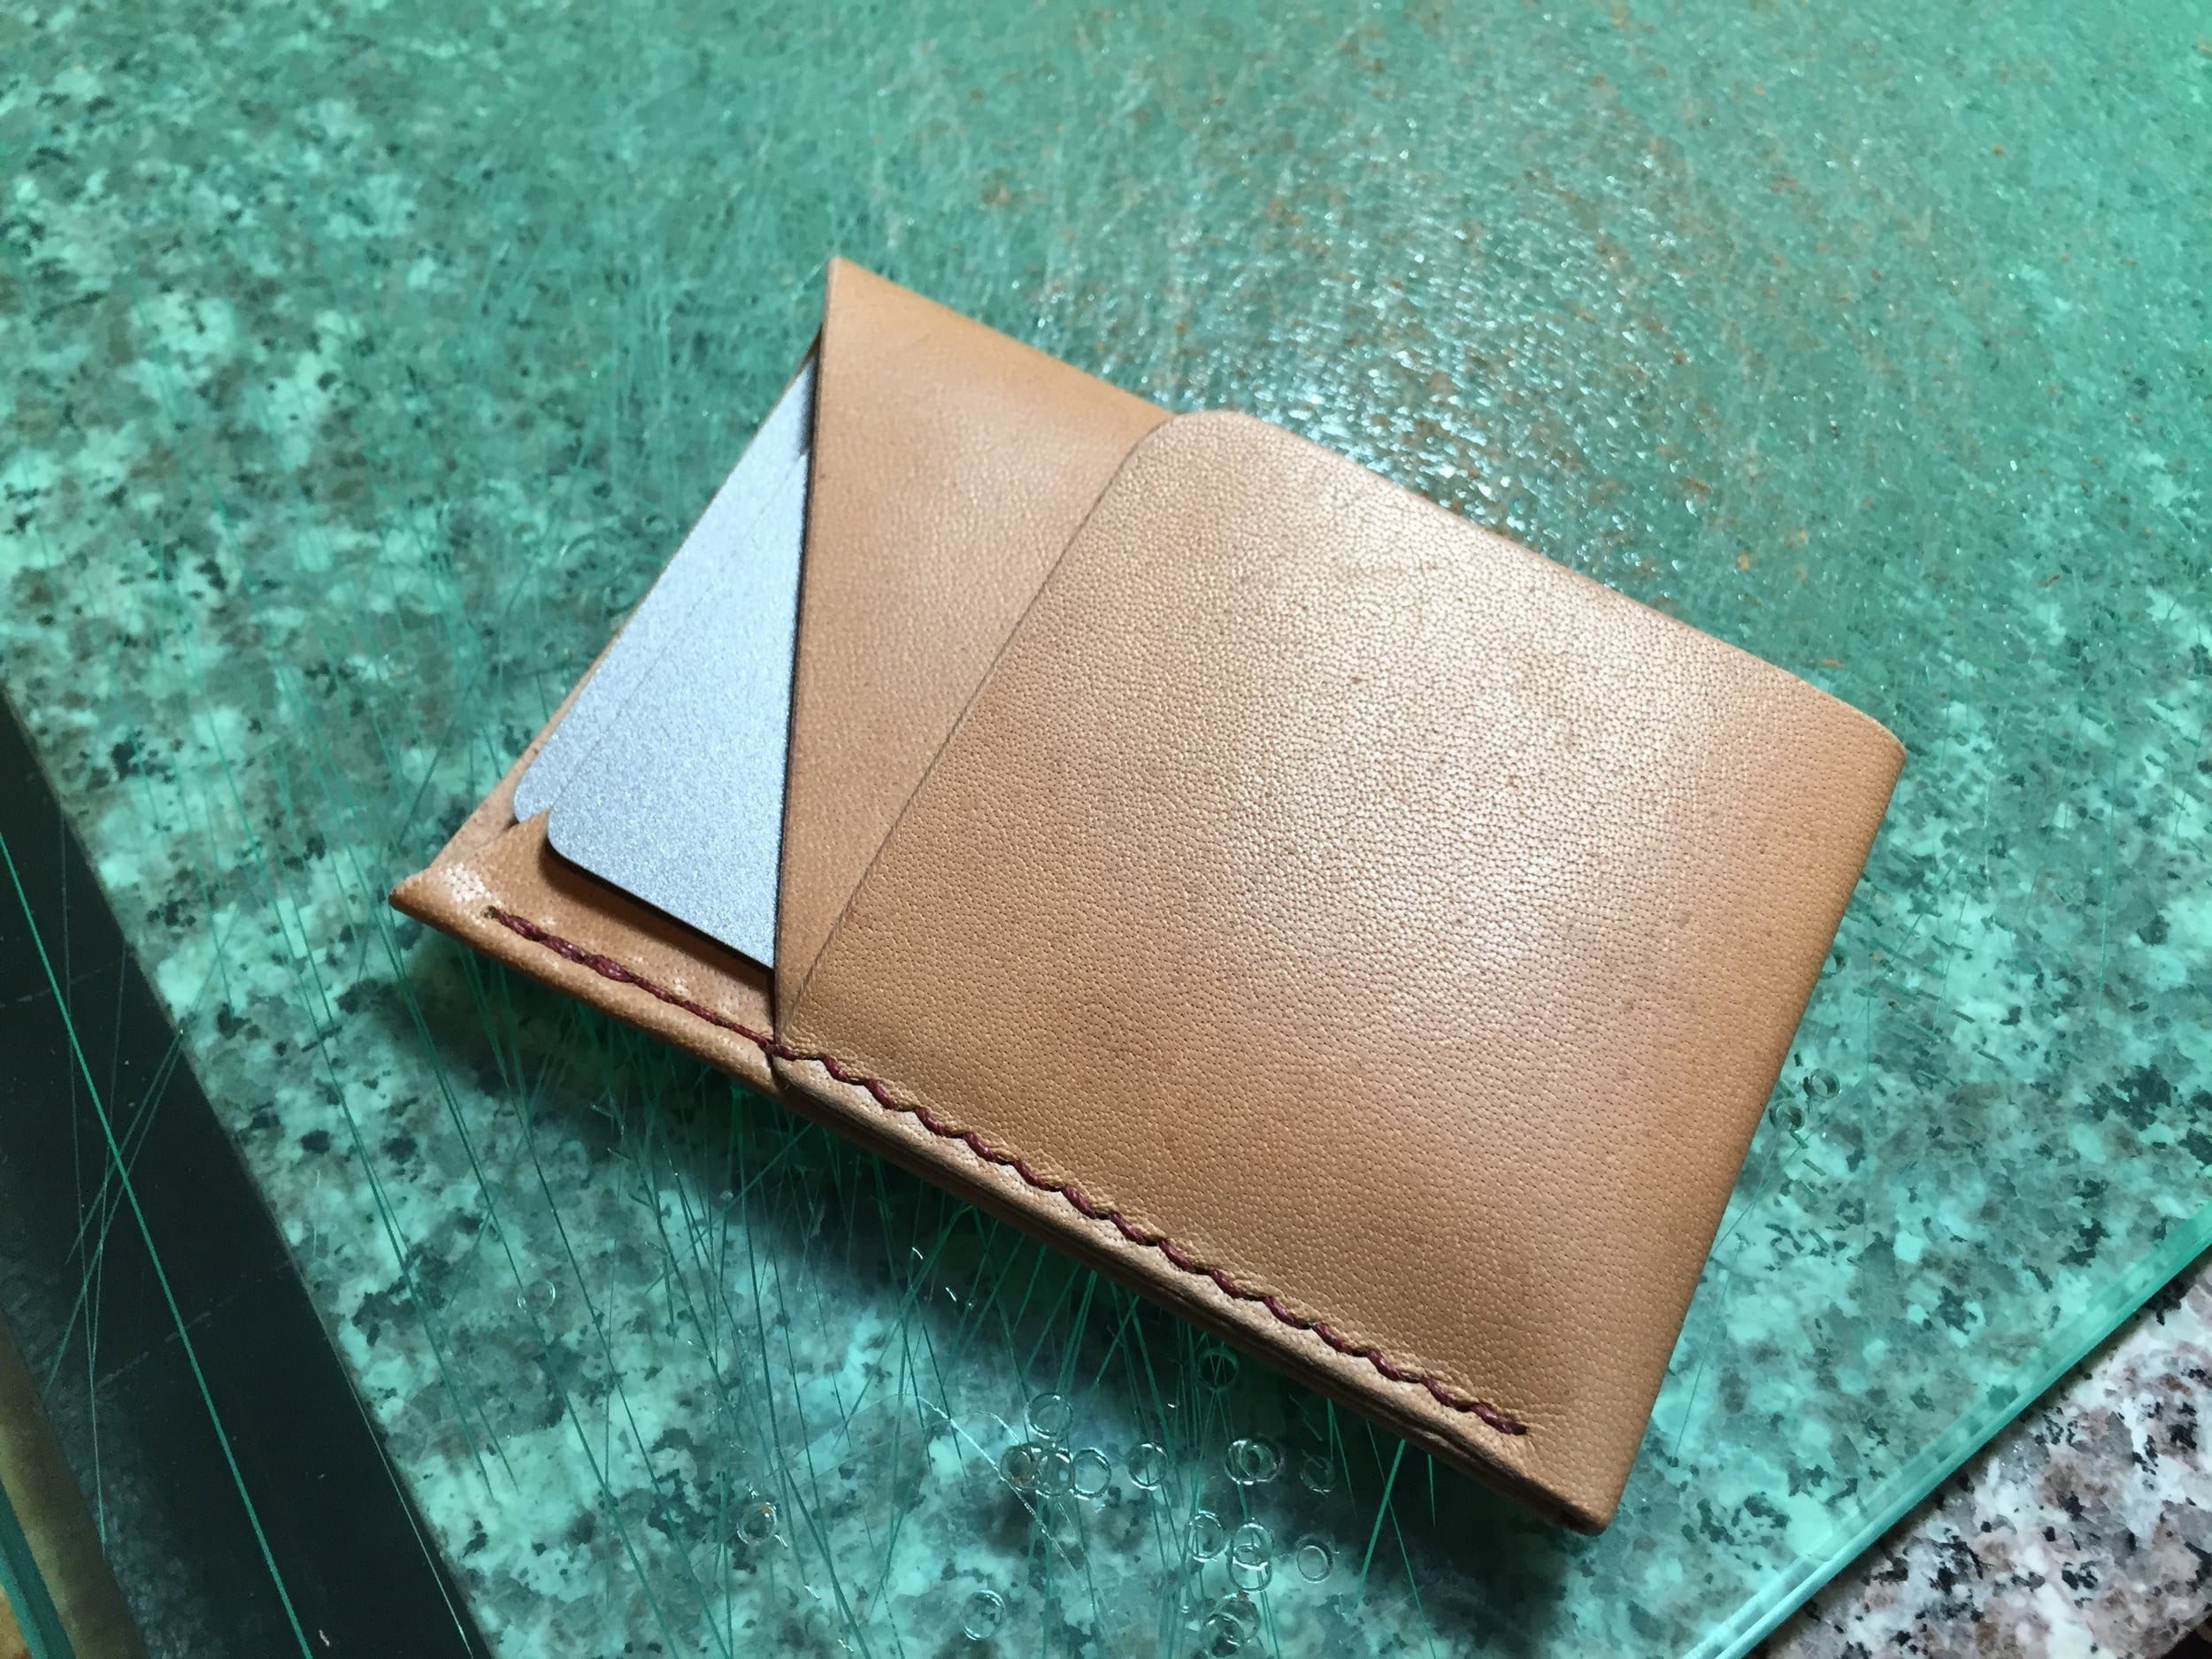 The finished wallet!